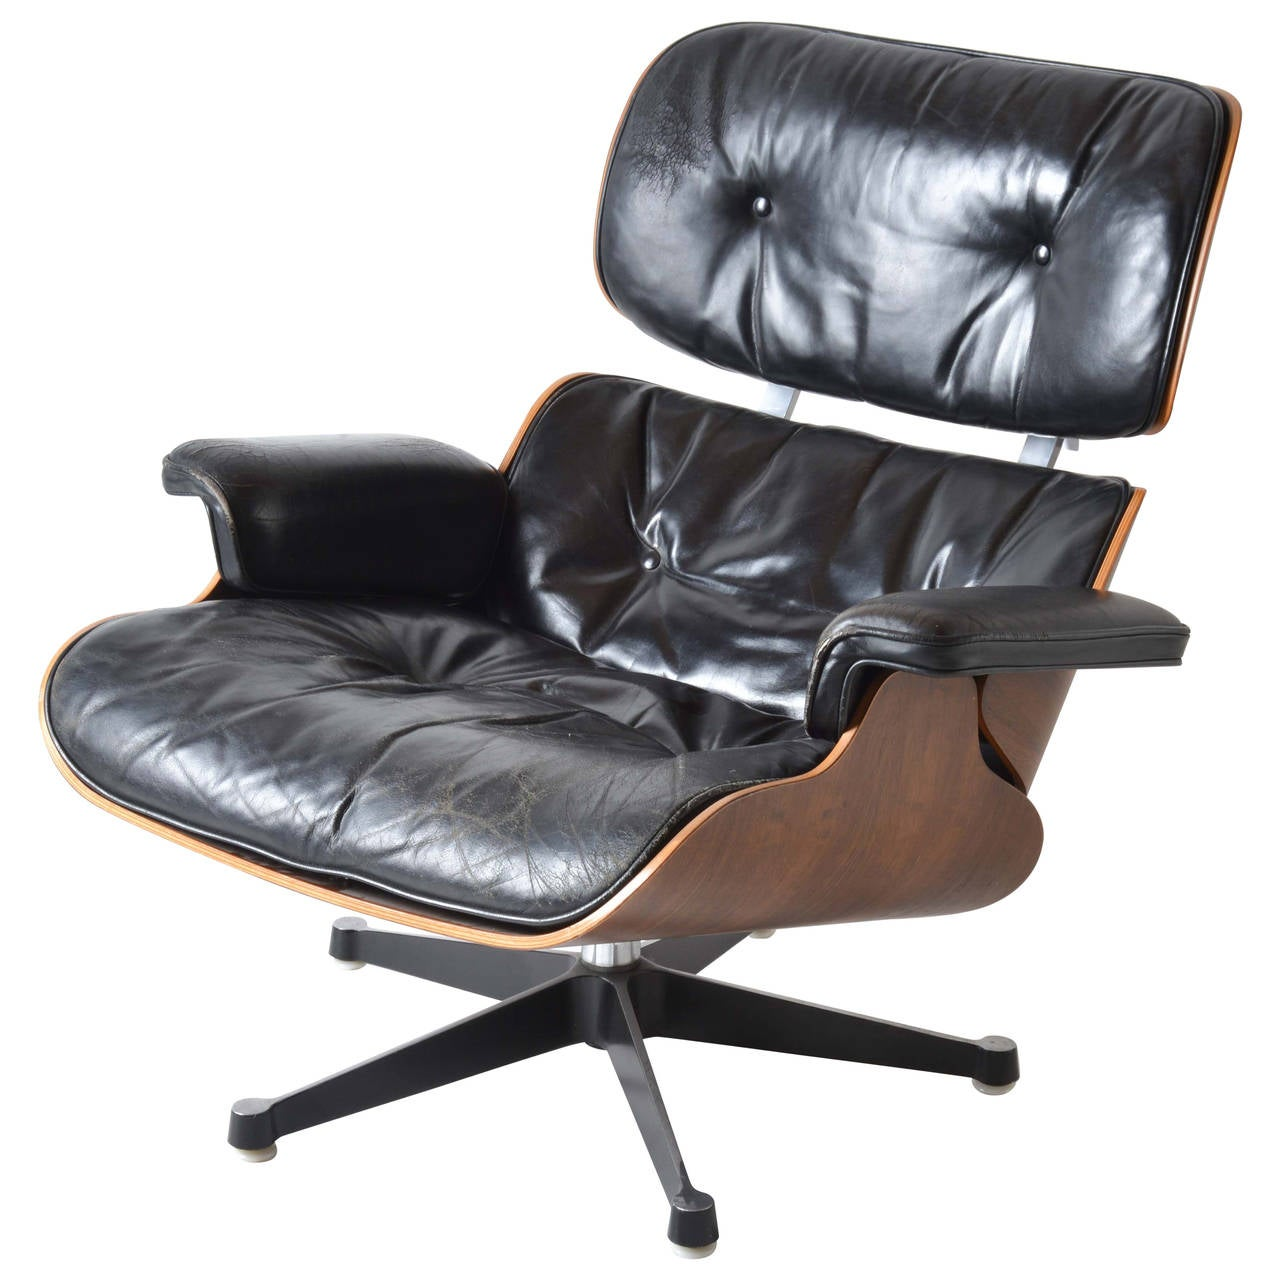 Iconic eames lounge chair for herman miller at 1stdibs Iconic eames chair